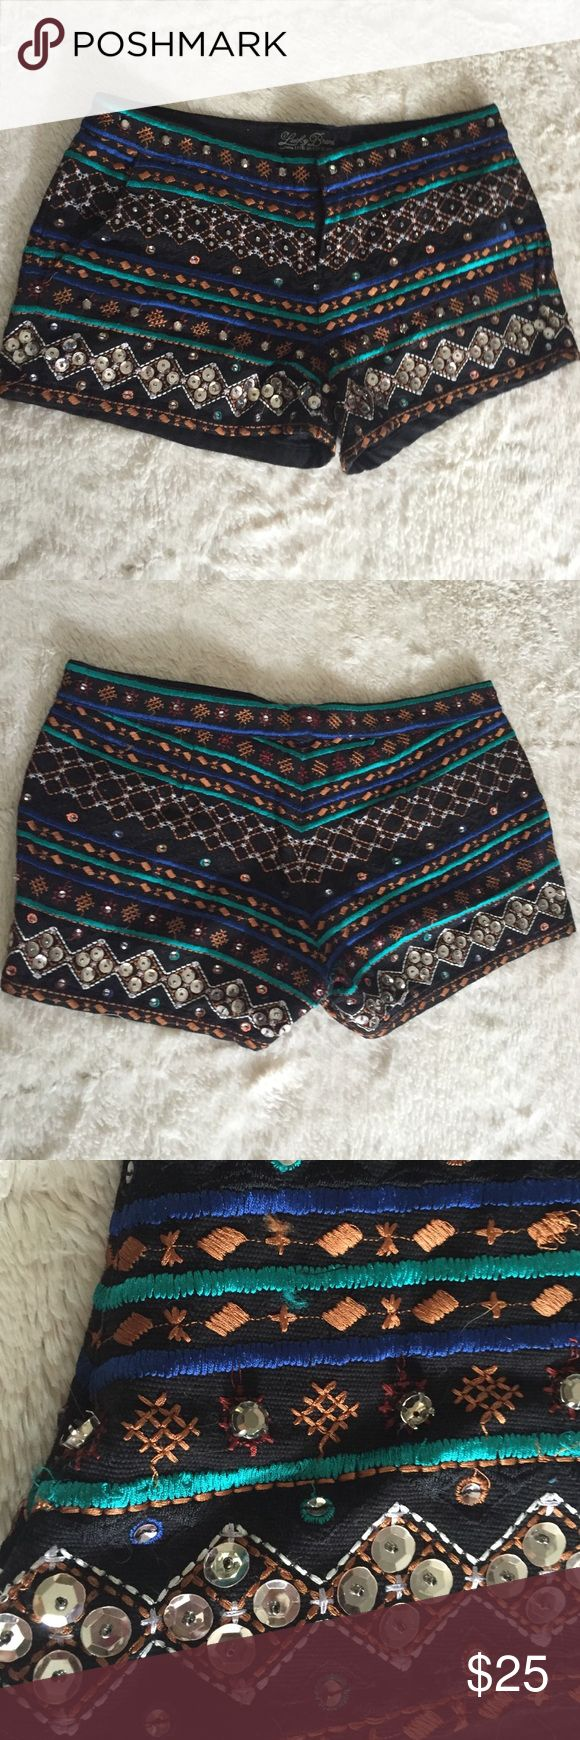 Lucky Brand Shorts Very fun embellished shorts! There are 2 missing gems that are shown in the picture above. Other then that these are in great shape, I've only worn them once! Lucky Brand Shorts